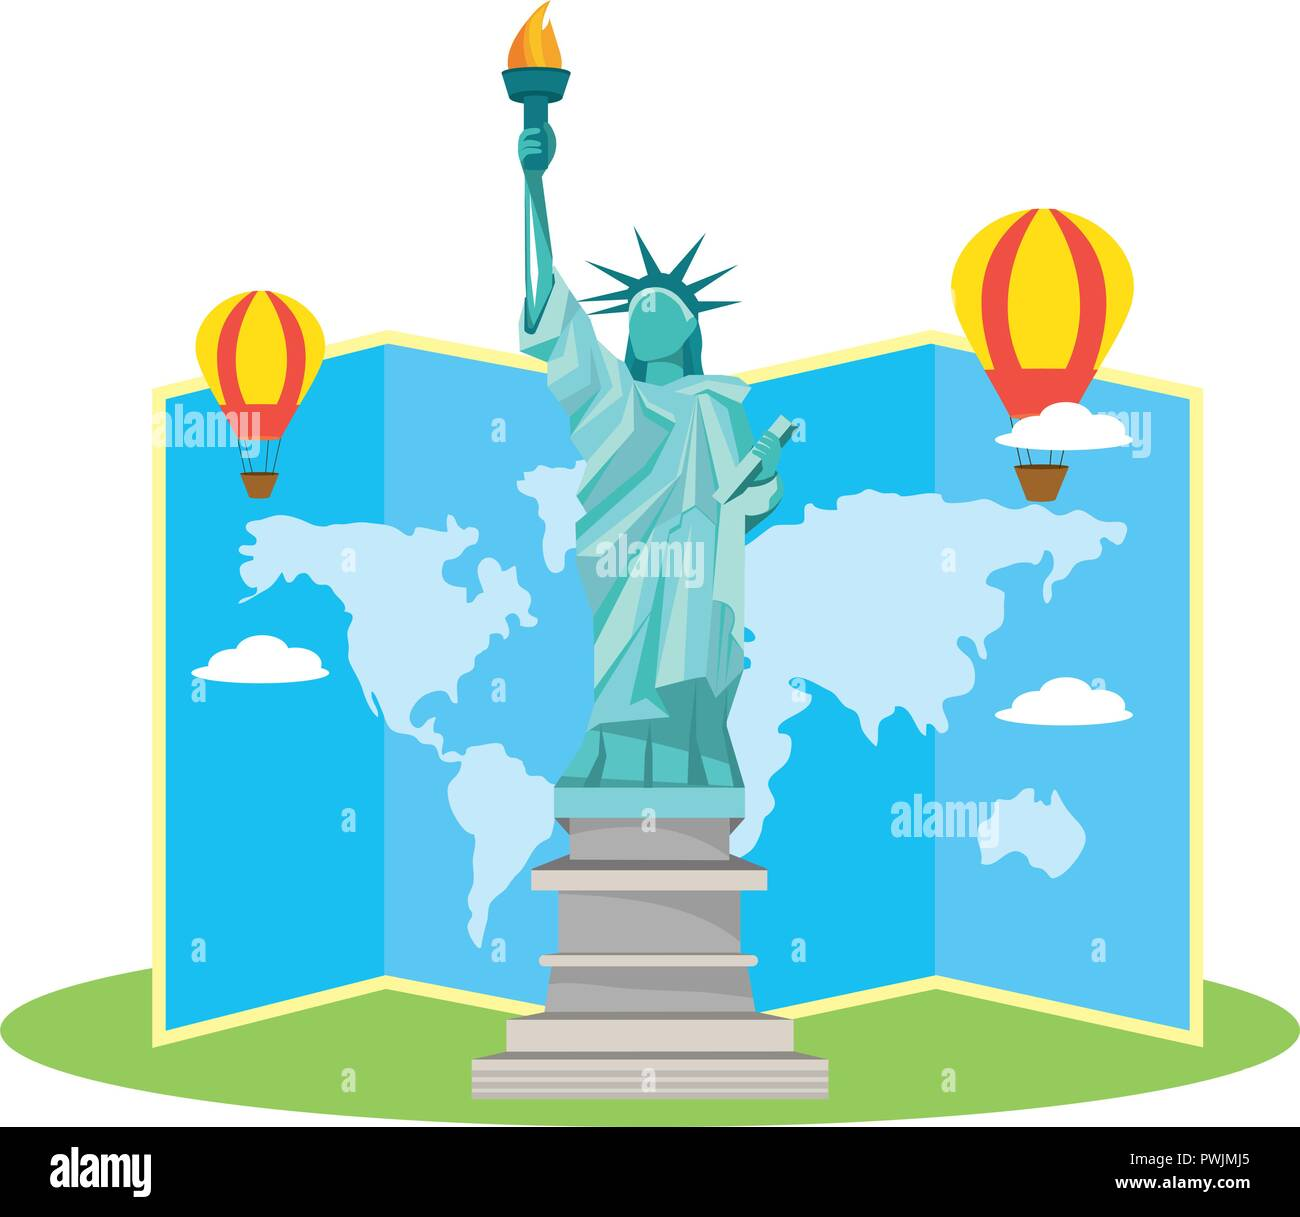 world travel and tourism - Stock Vector